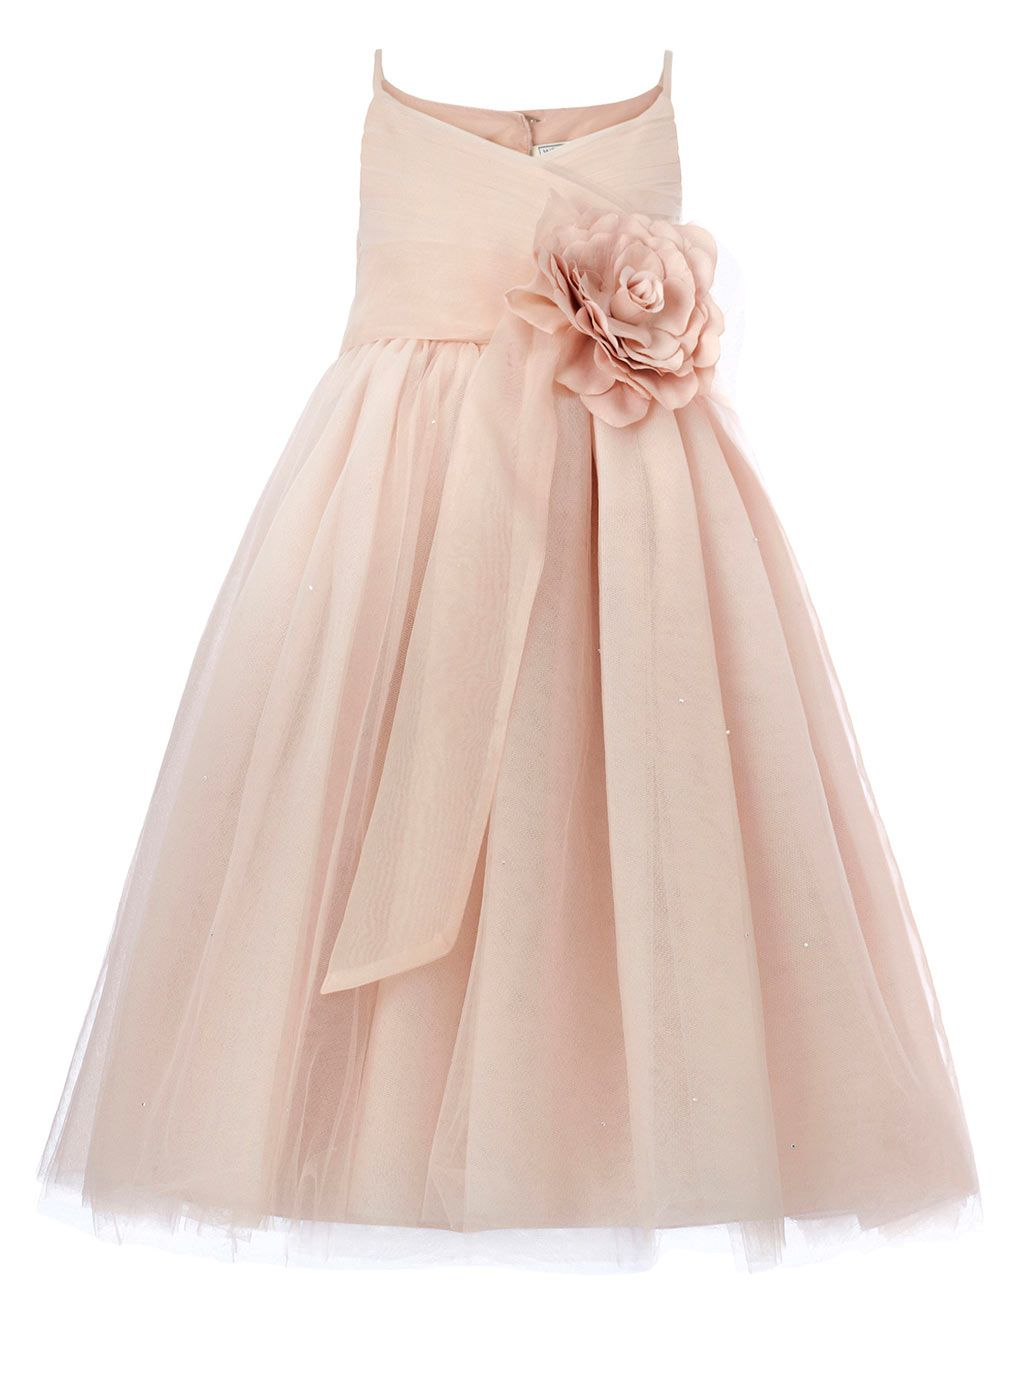 Blush bridesmaid dress wedding ideas for brides grooms lydia blush flower girl dress this style is cute ombrellifo Gallery